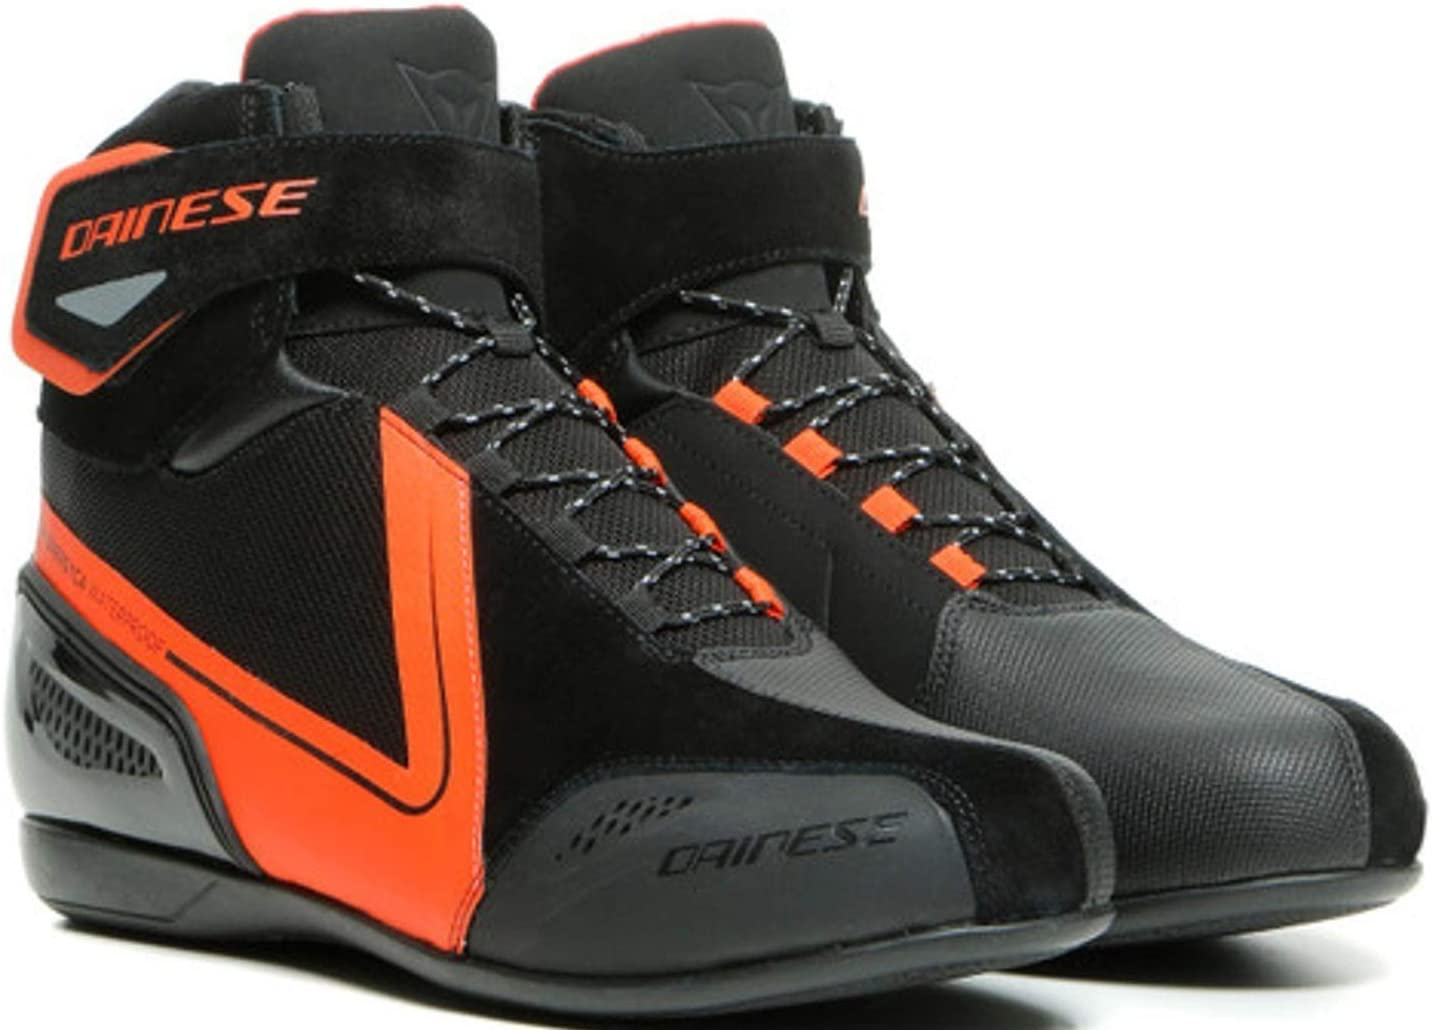 Dainese Energyca D-WP Mens New popularity Motorcycle Shoes Red Fluo 39 Black EU Selling and selling